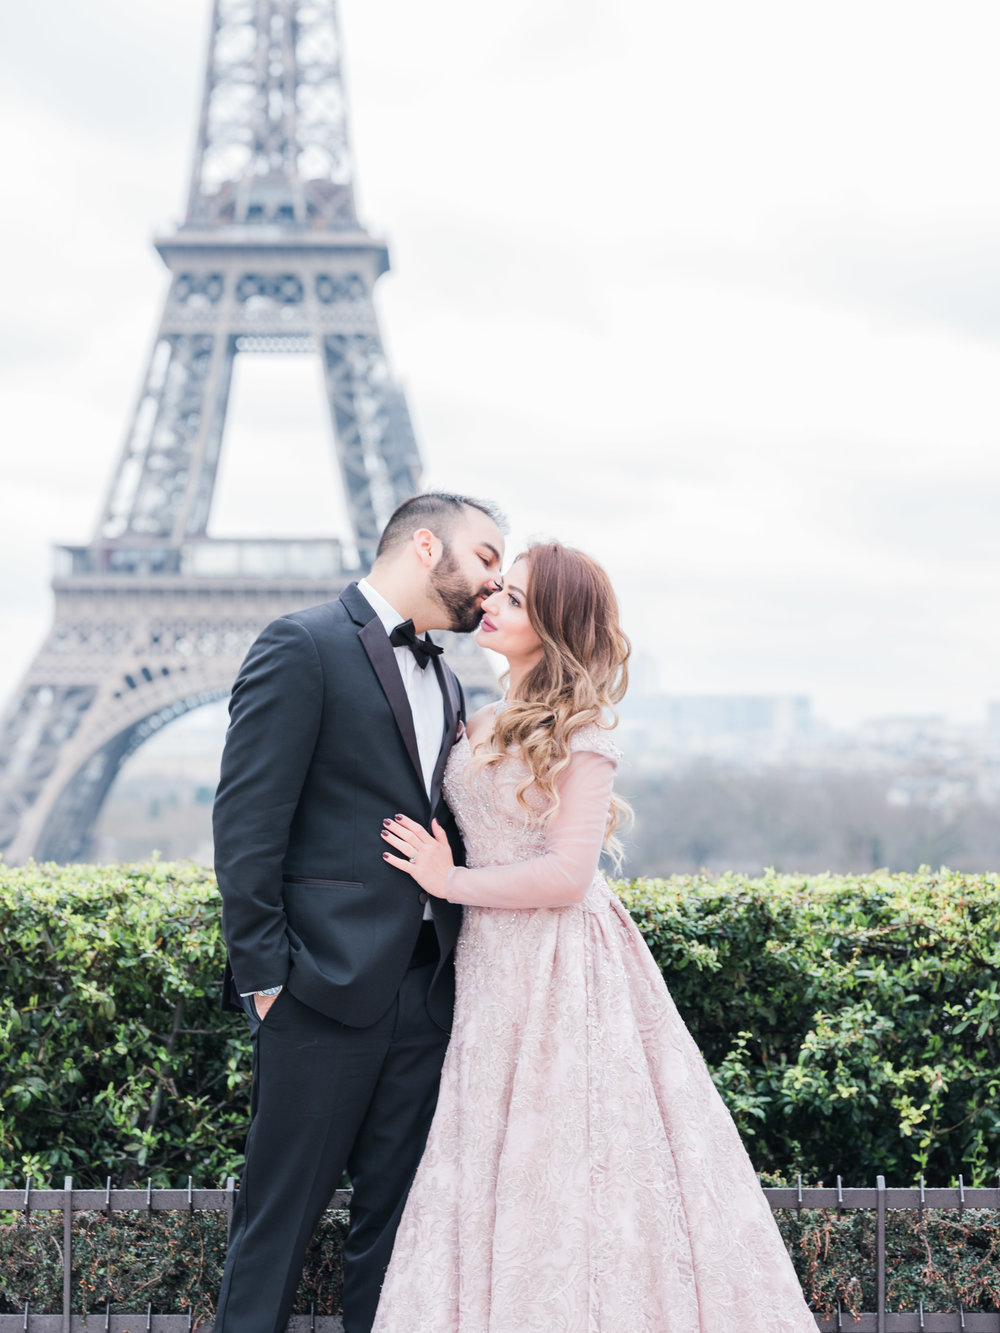 romantic couples photo shoot at eiffel tower in paris france in tux and gown